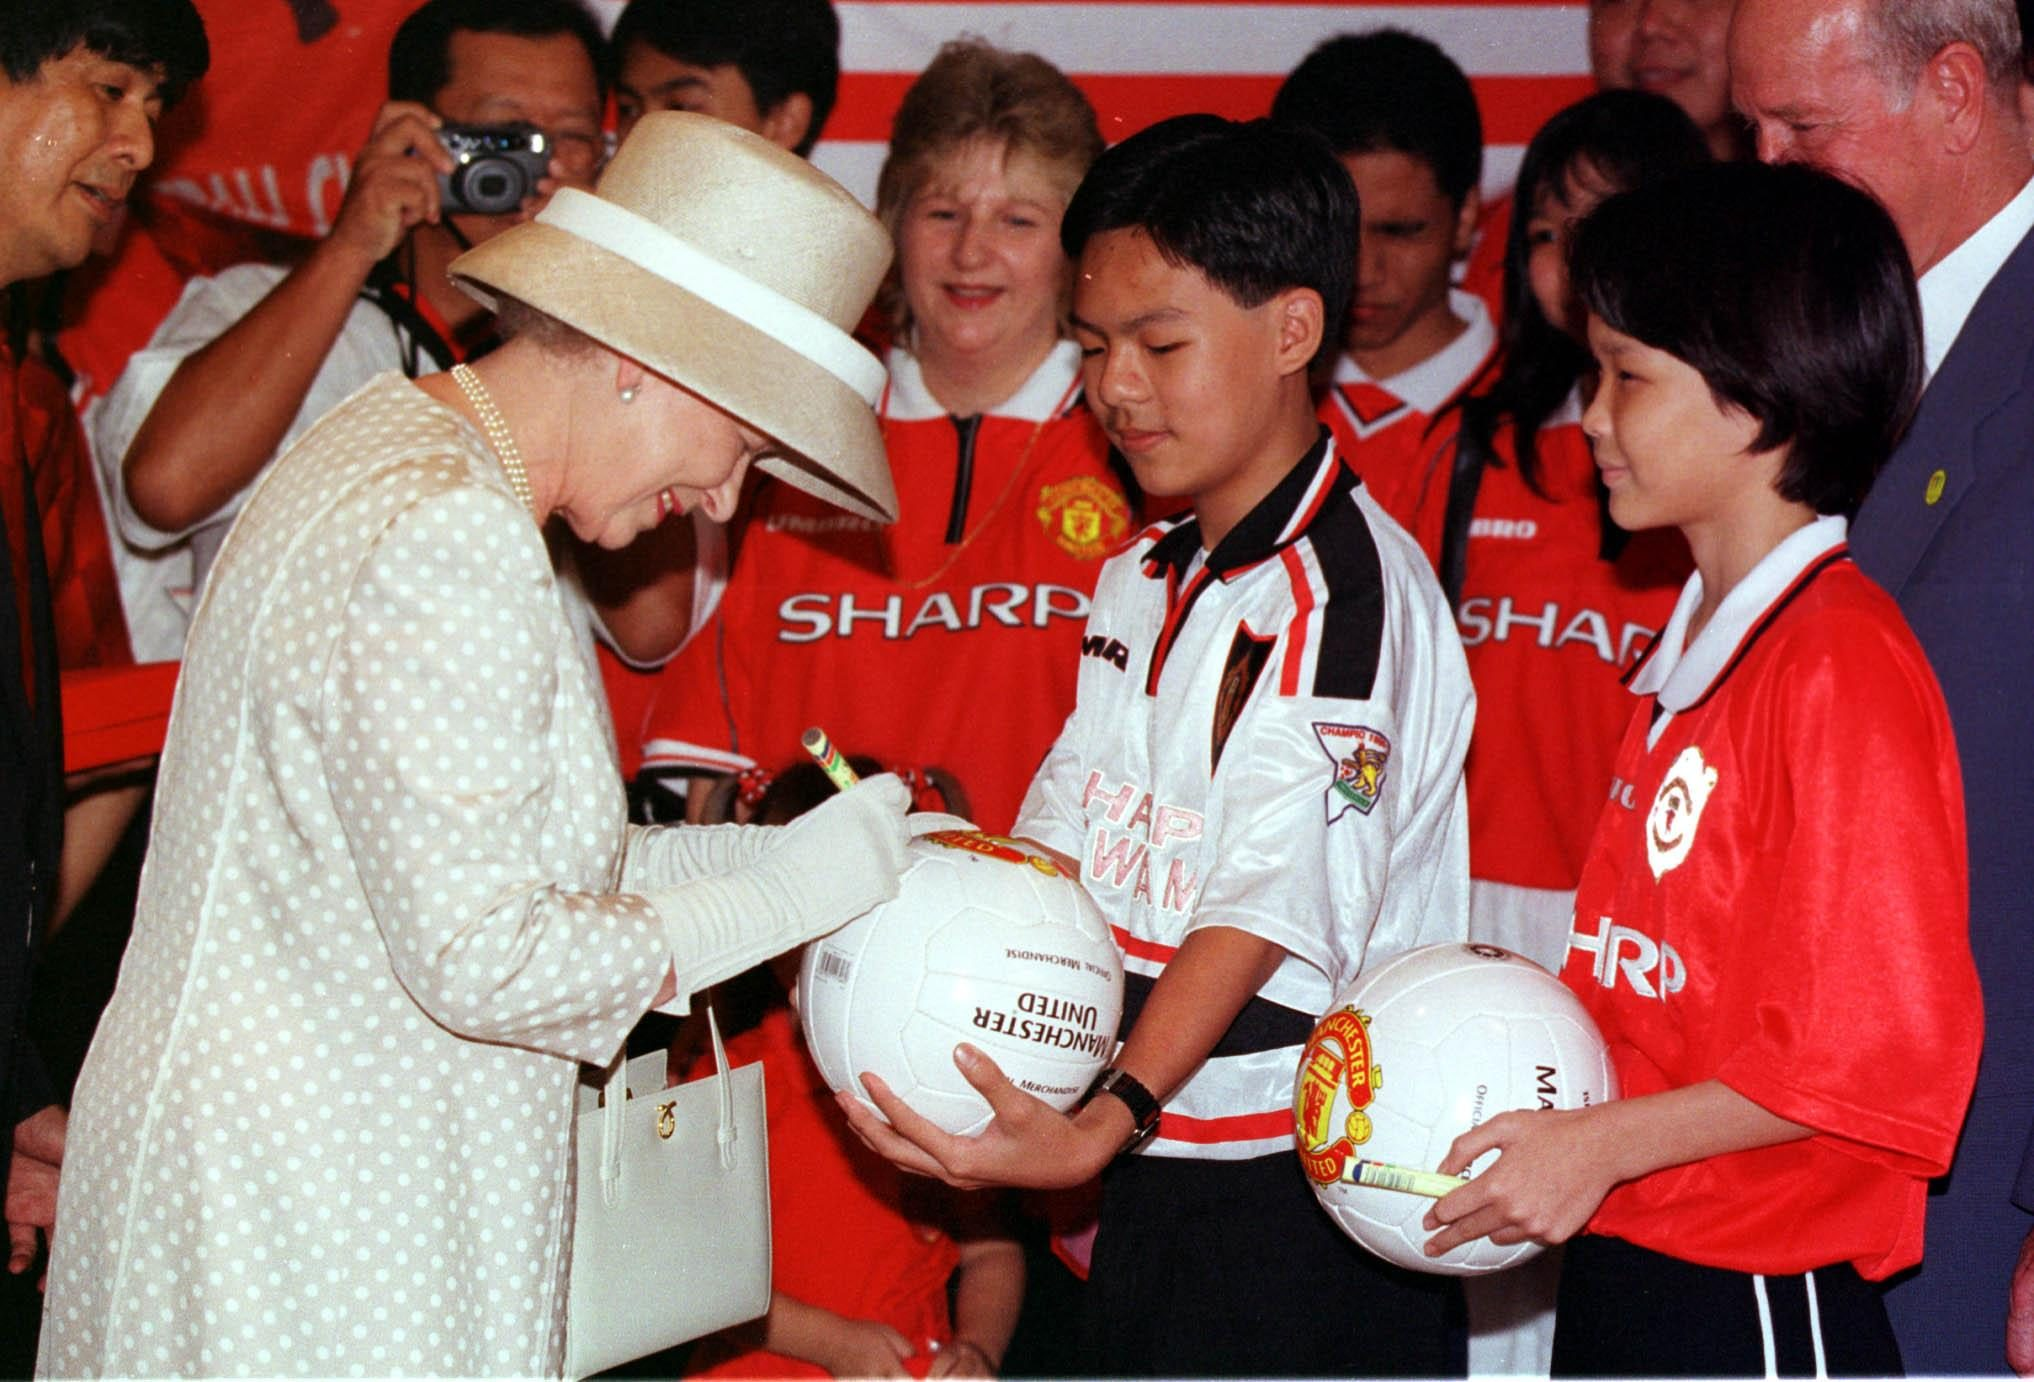 Queen Elizabeth Signs A Manchester United Football For The Mayalsian Branch Of The Manchester United Supporters Club In Kuala Lumpur Malaysia. 1998 . Rexmailpix.